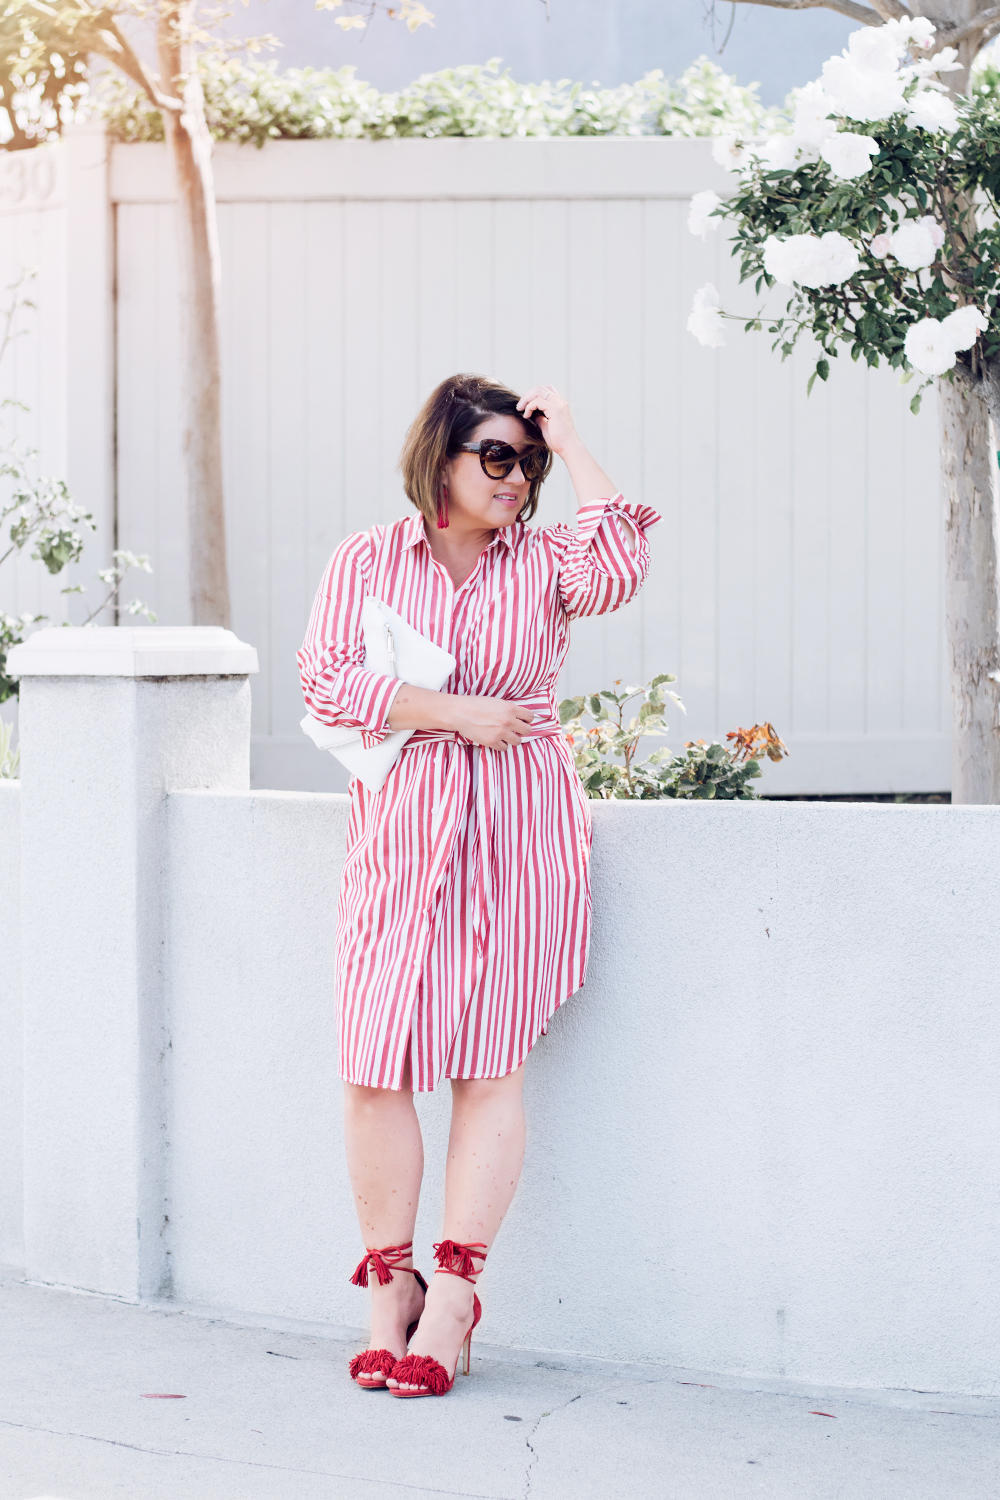 Red Stripes for Summer Striped Red Dress Who What Wear Street Style Looks to Copy in 2018 Barefoot in LA Fashion Blog Style Ideas Outfits0188